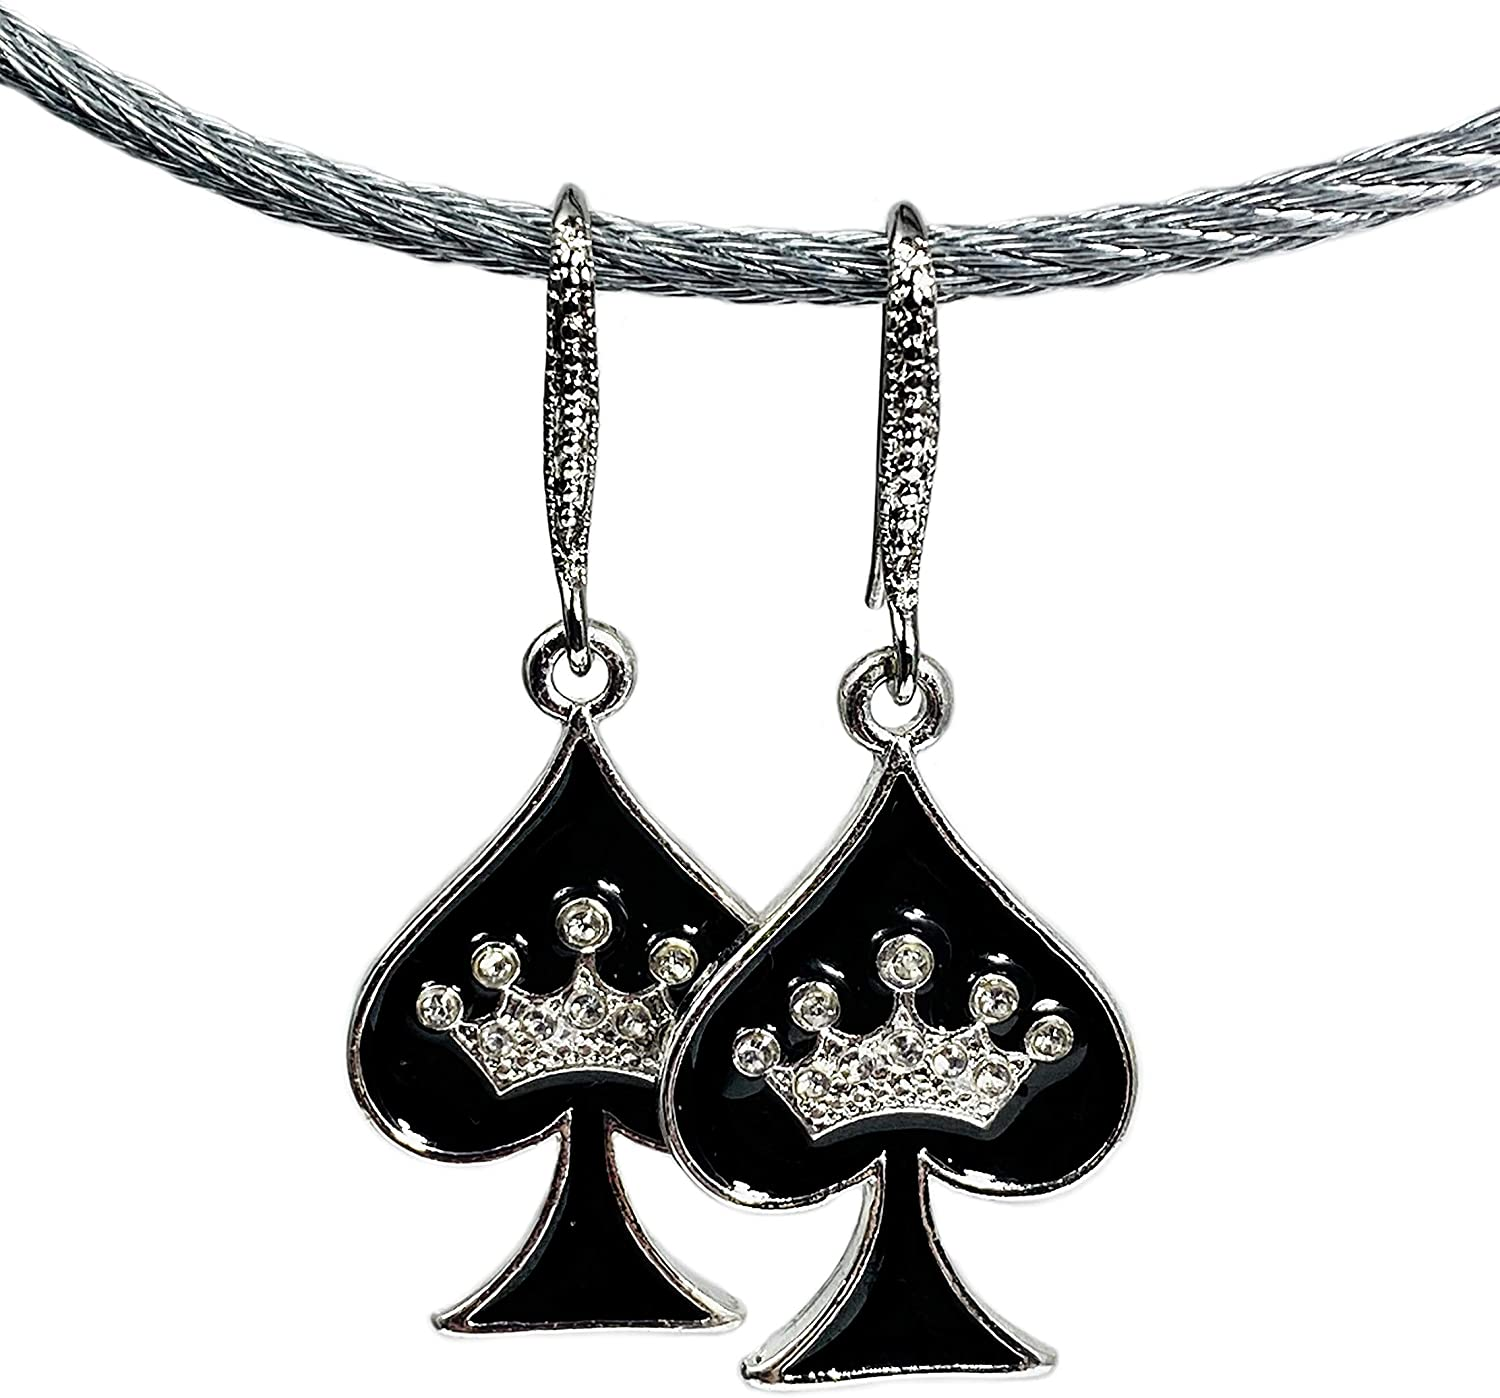 His and Hers Intimates HOTWIFE Earring Sets - Jewelry, Hot Wife, Vixen, MFM, Queen of Spades, QOS, Swinger, Lifestyle, BBC, Cuckold, Threesome, Anklet, Bracelet